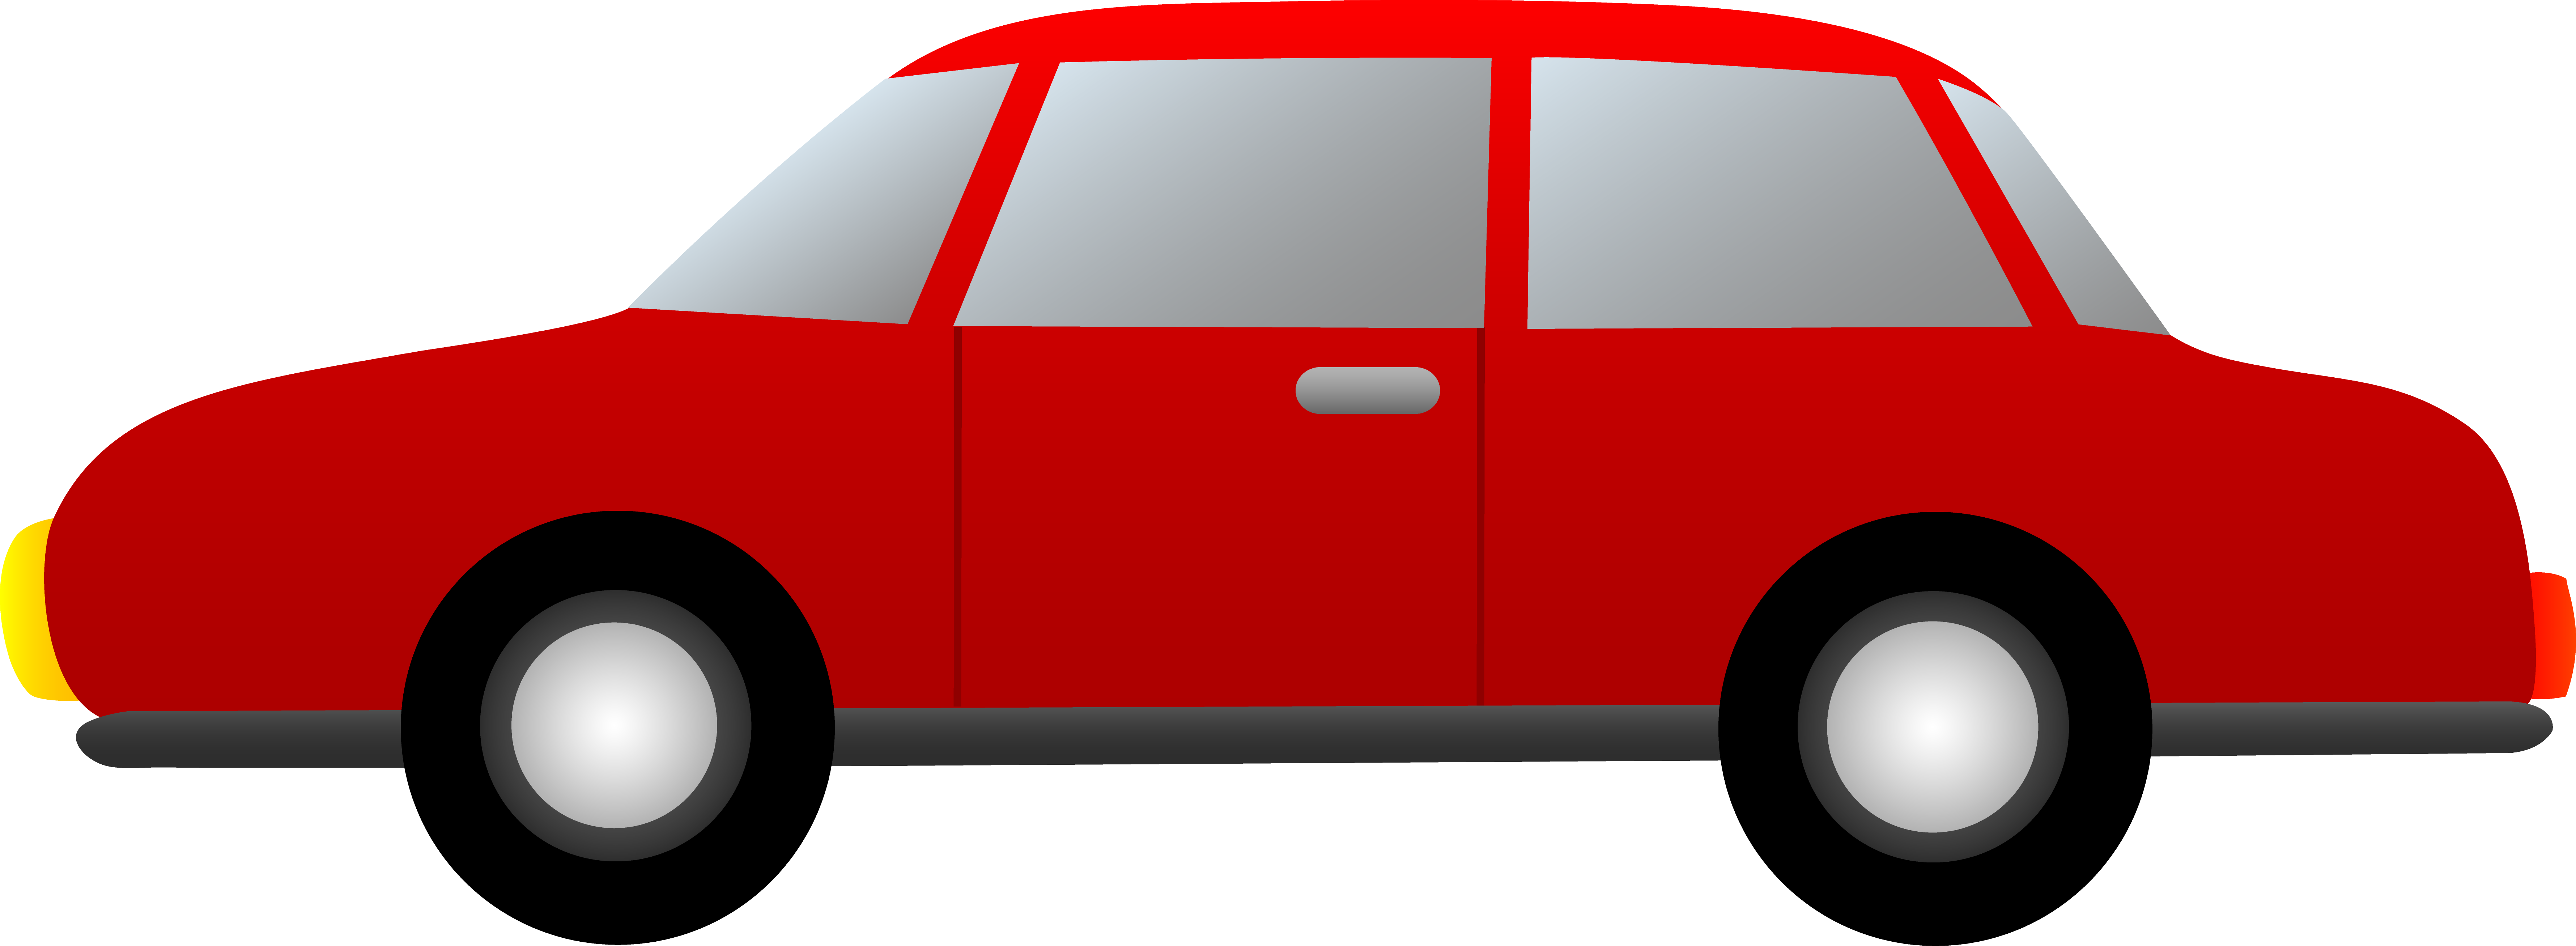 Red Car Side View Clipart.